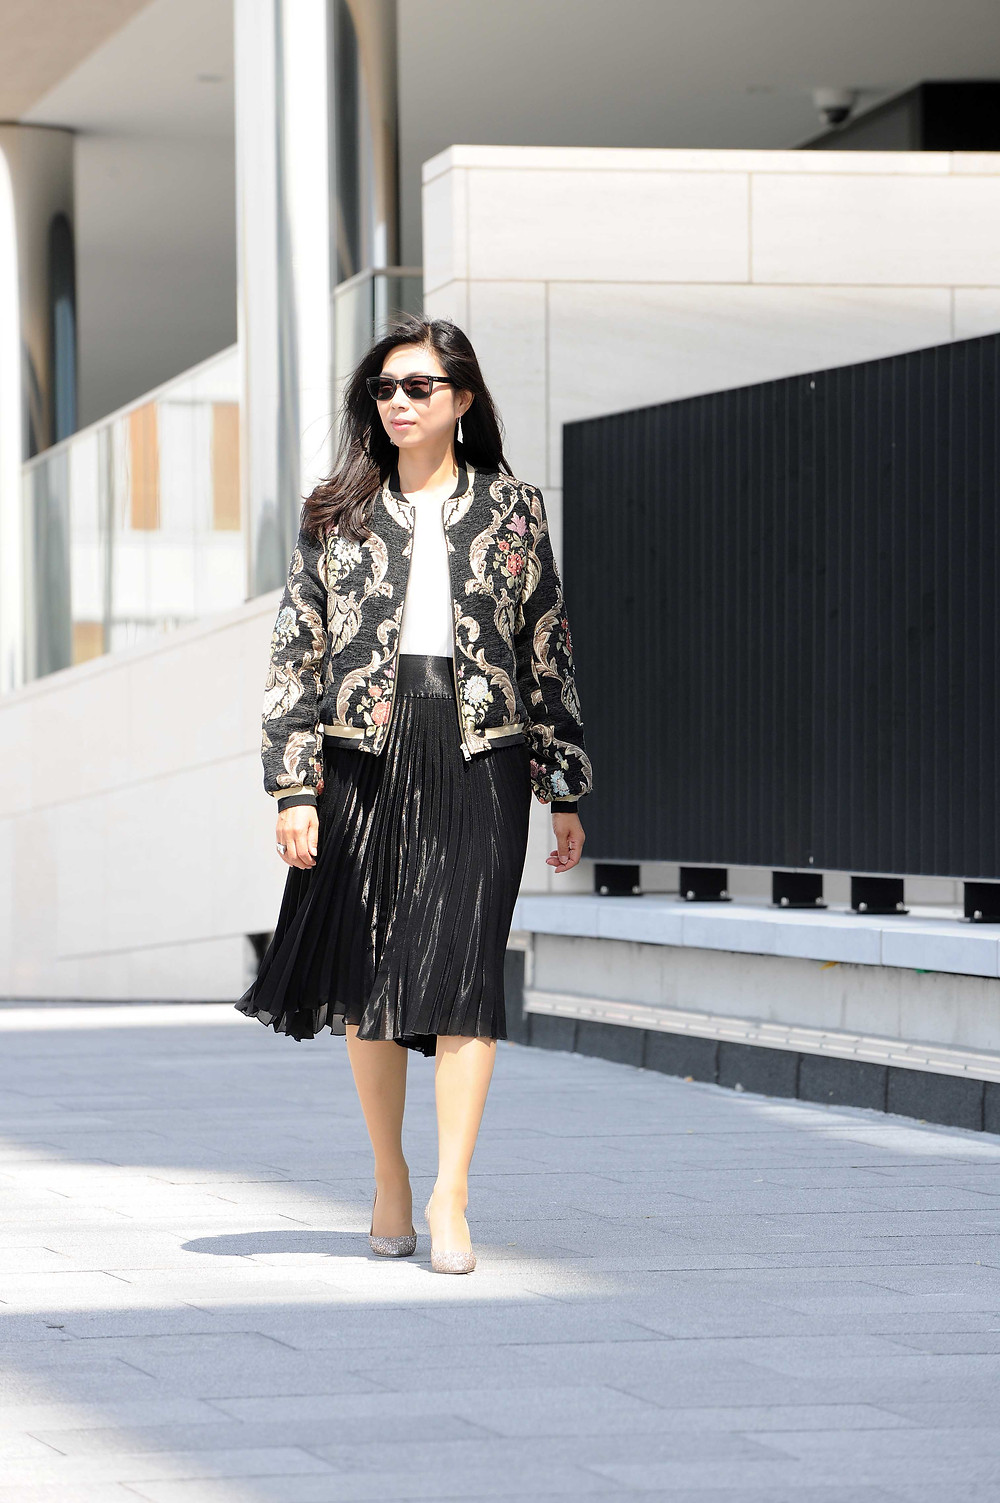 Jacquard floral bomber jacket with a black metallic pleated skirt